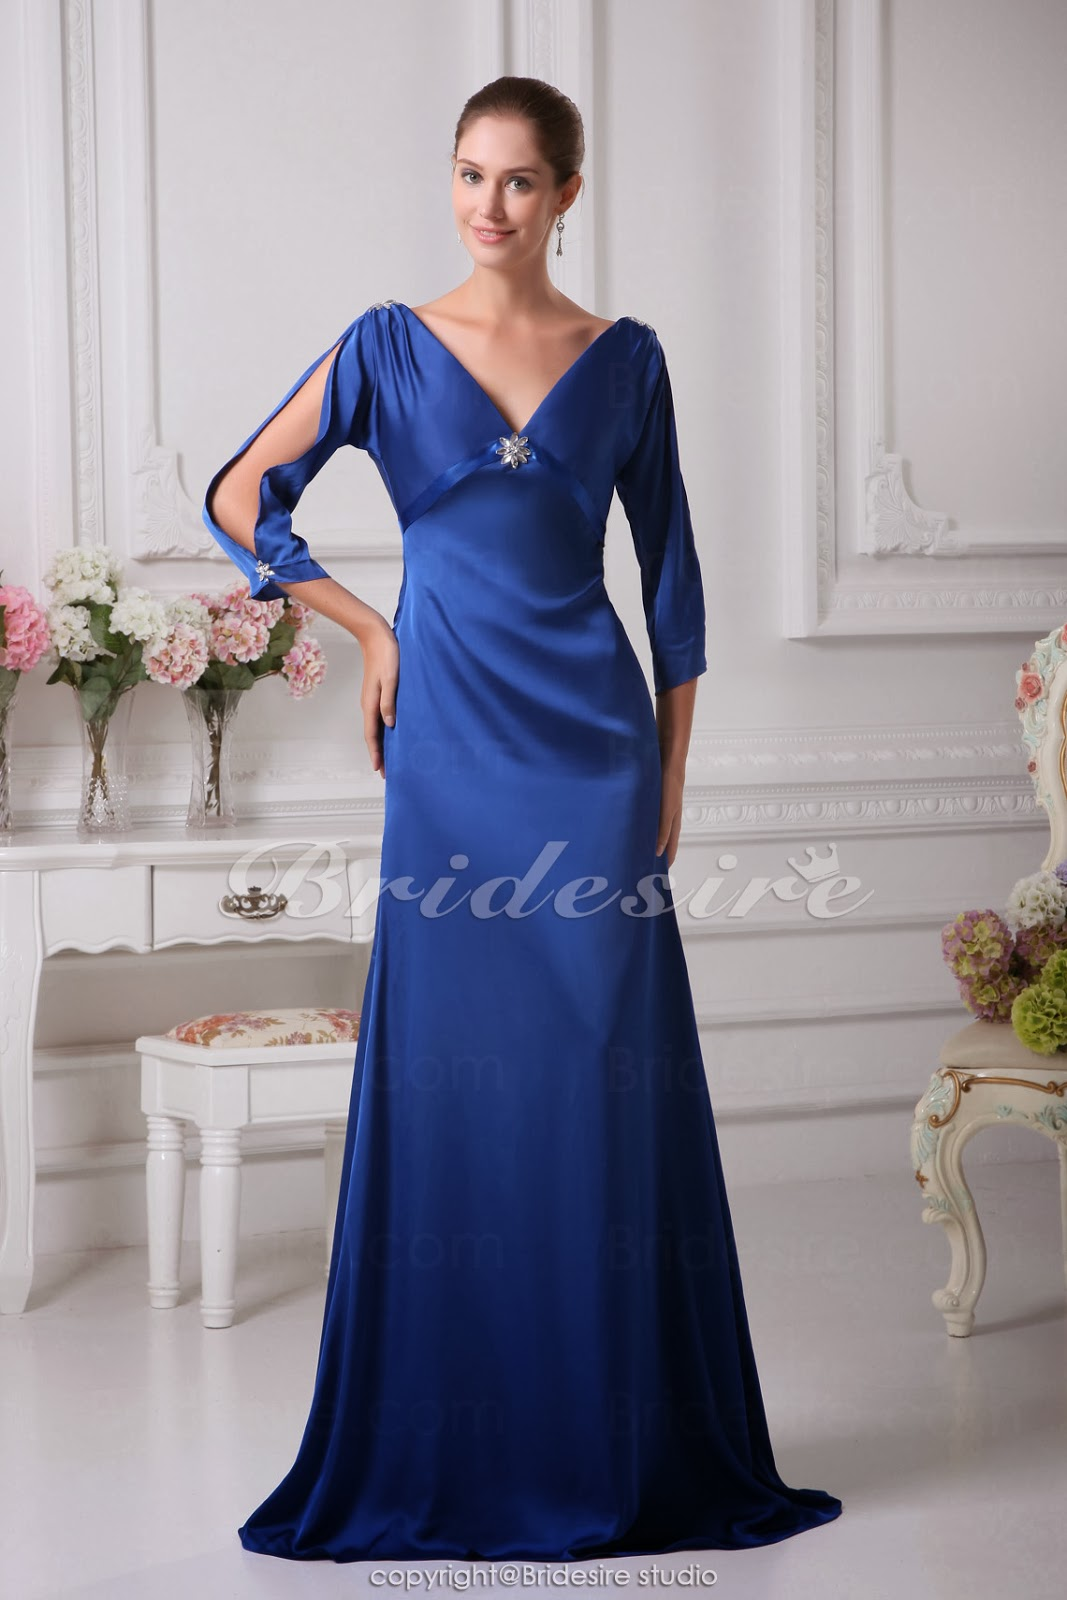 Makeup Styles For Prom With Blue Dress Royal Blue Prom Dress